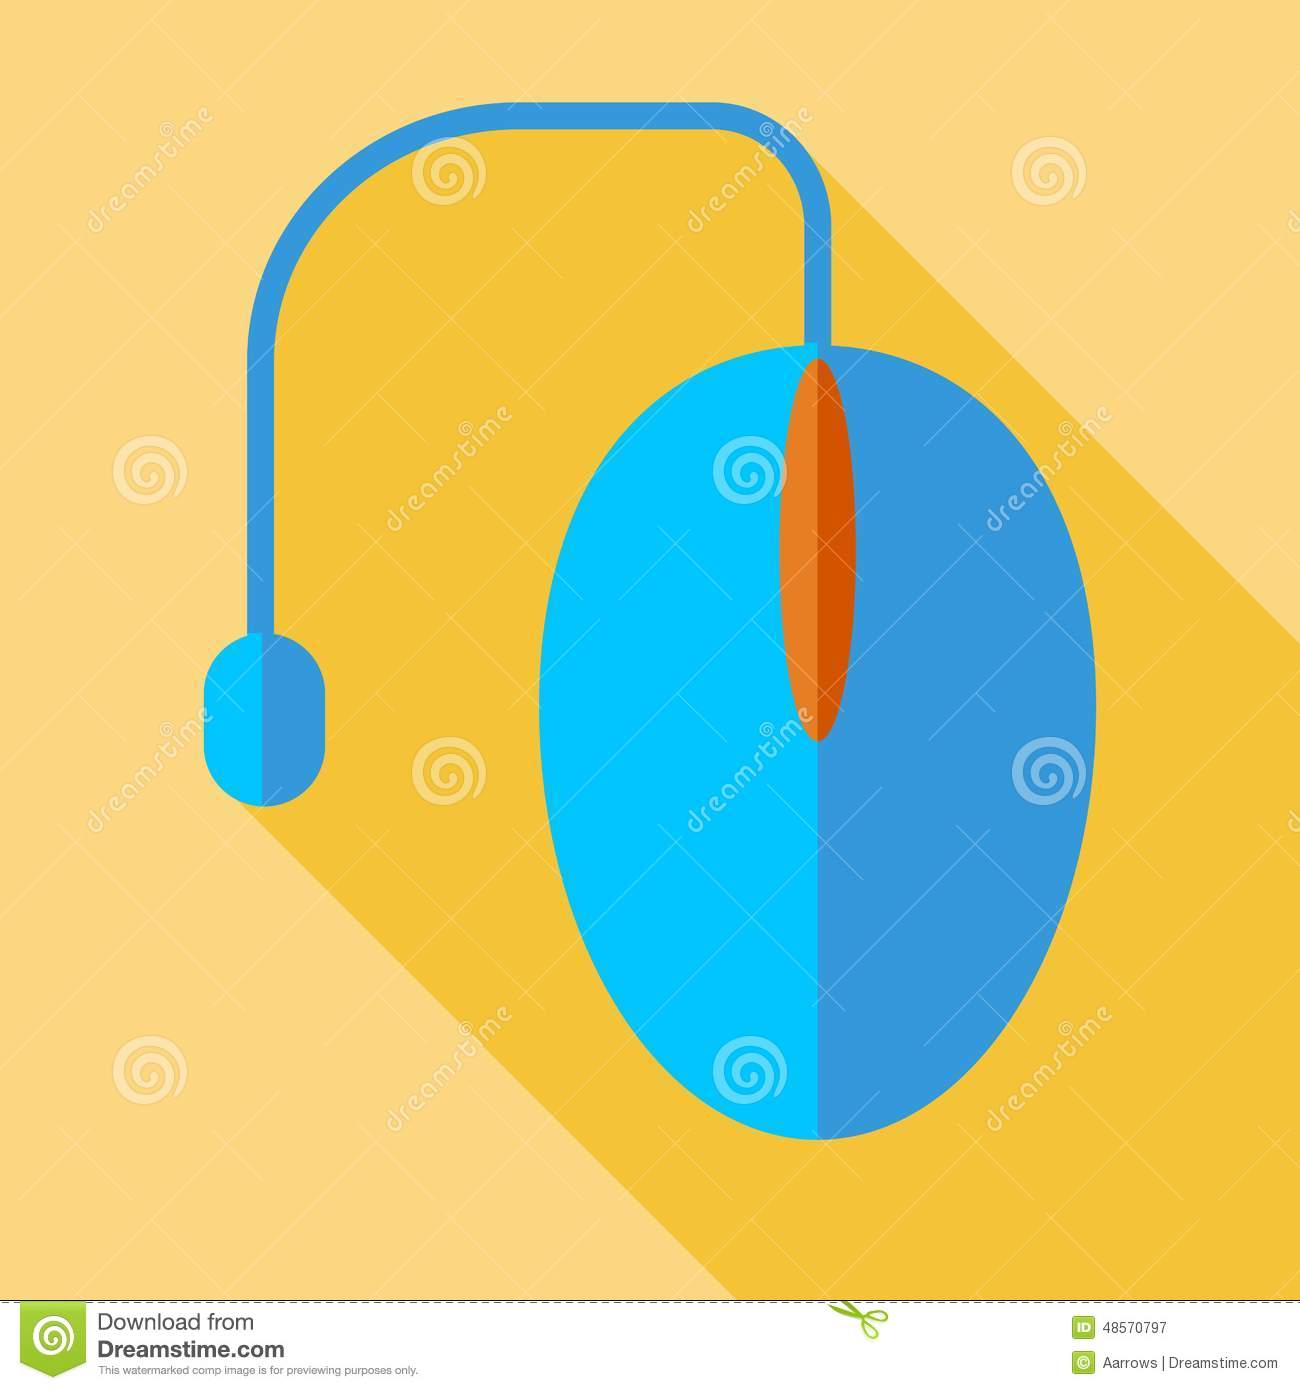 Modern Flat Design Concept Icon Computer Mouse Illustration Diagram